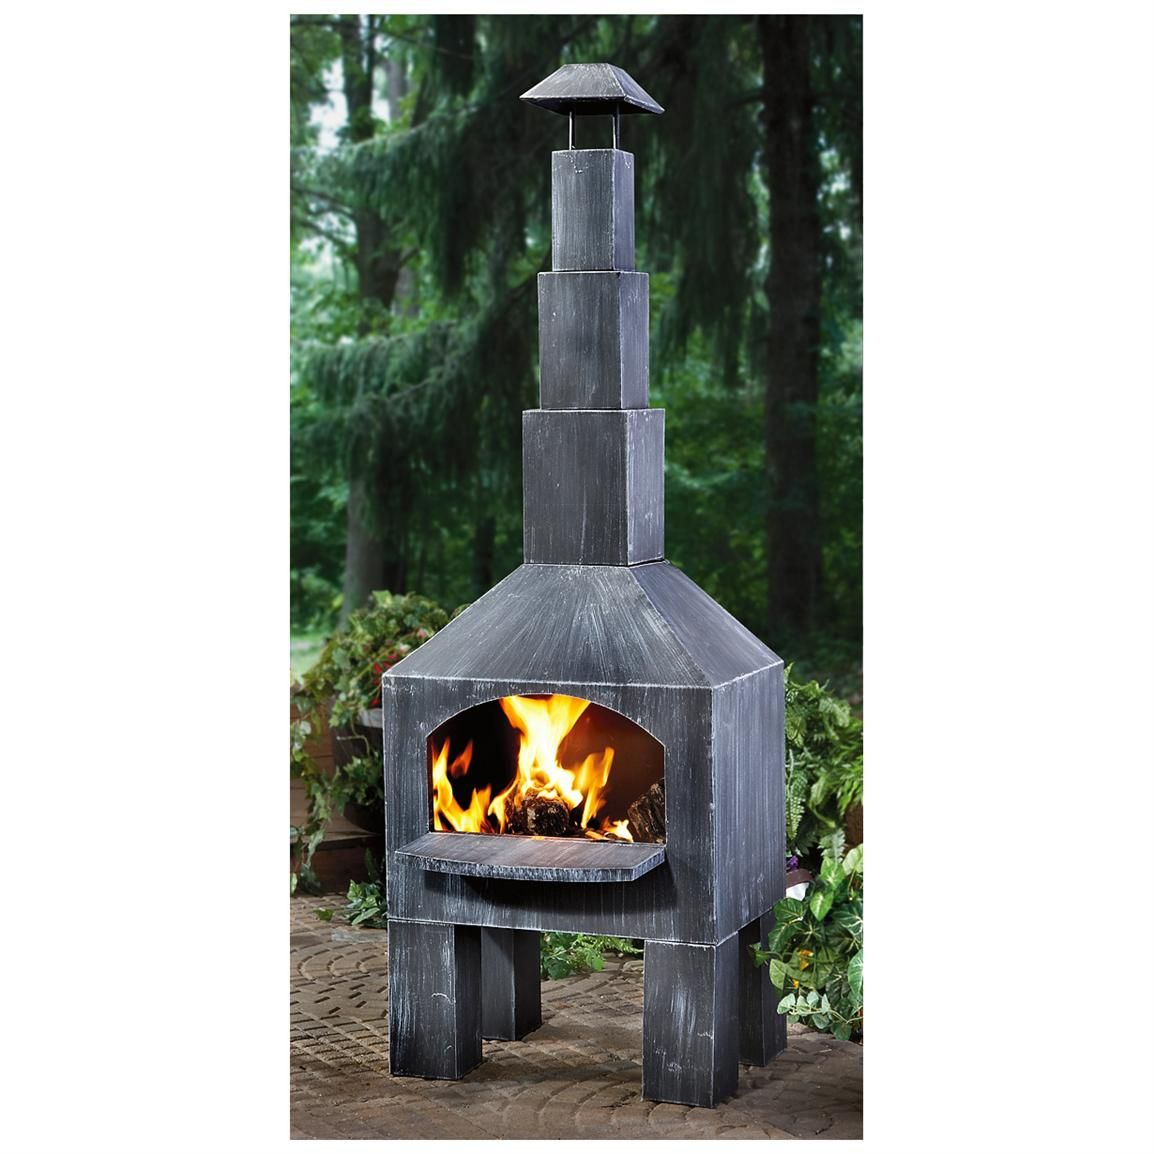 CASTLECREEK Outdoor Cooking Steel Chiminea